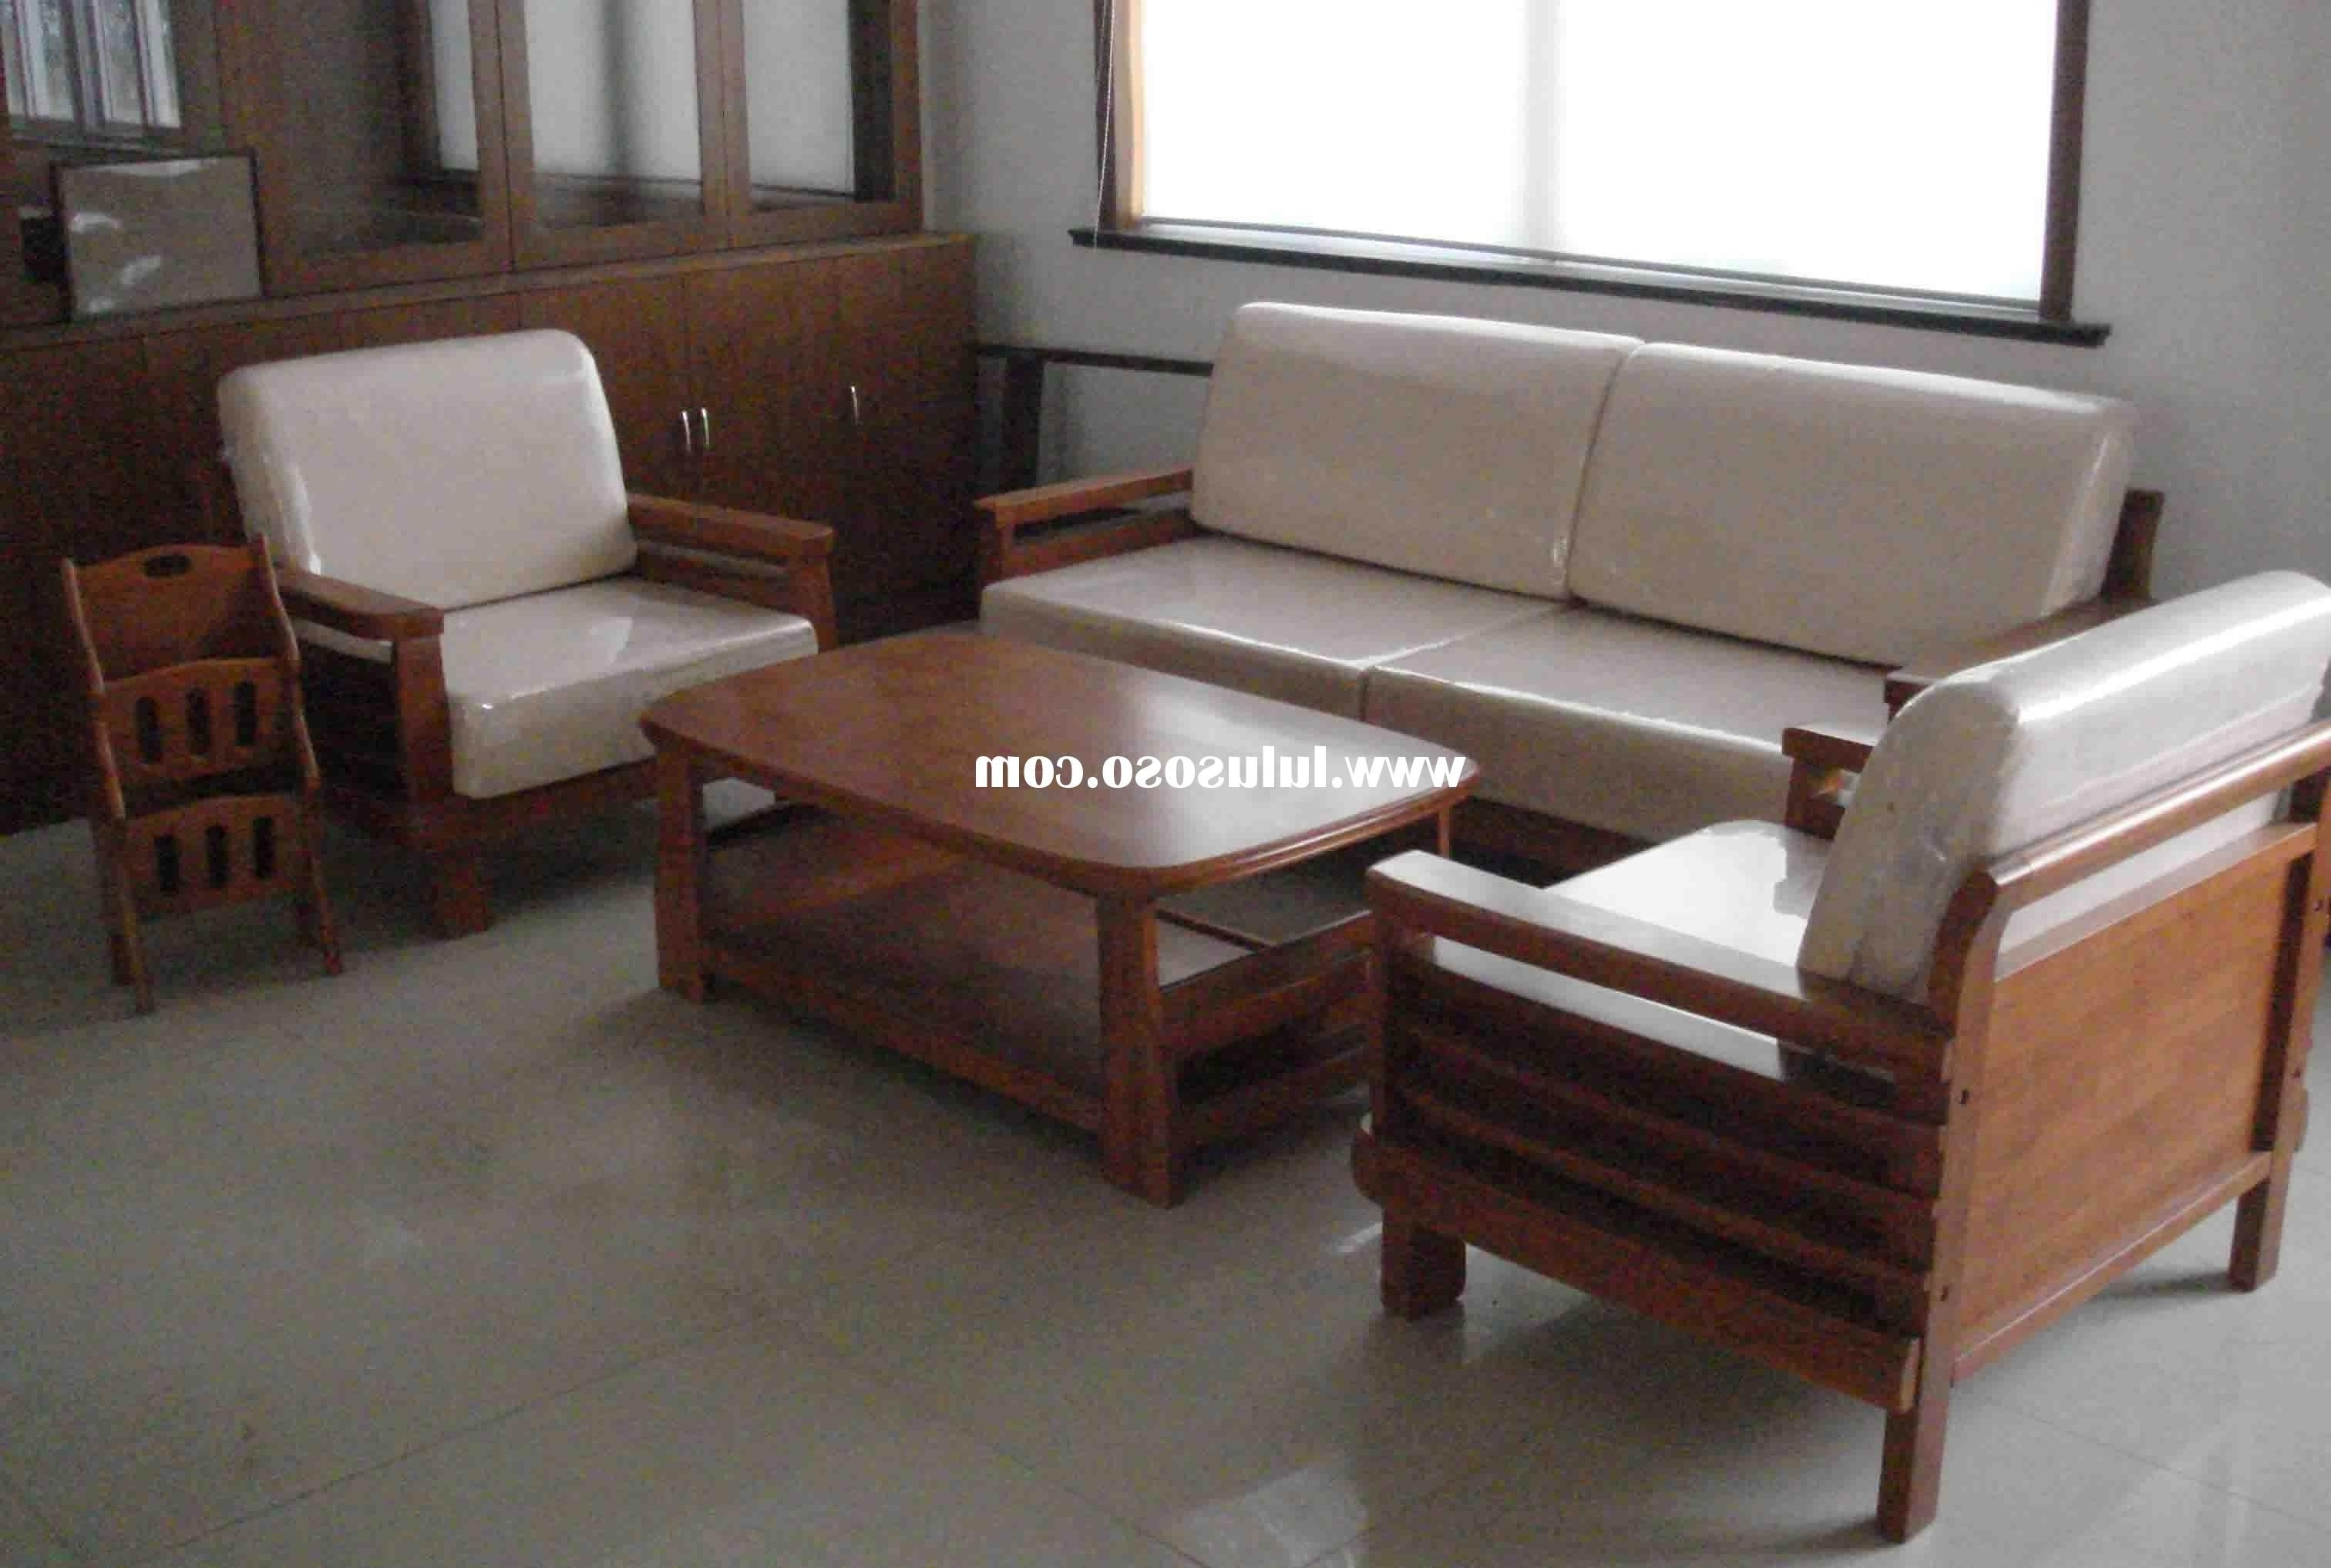 Sectional Sofas In Philippines For Widely Used Stunning Latest Wooden Sofa Design Images Gallery – Liltigertoo (View 15 of 20)